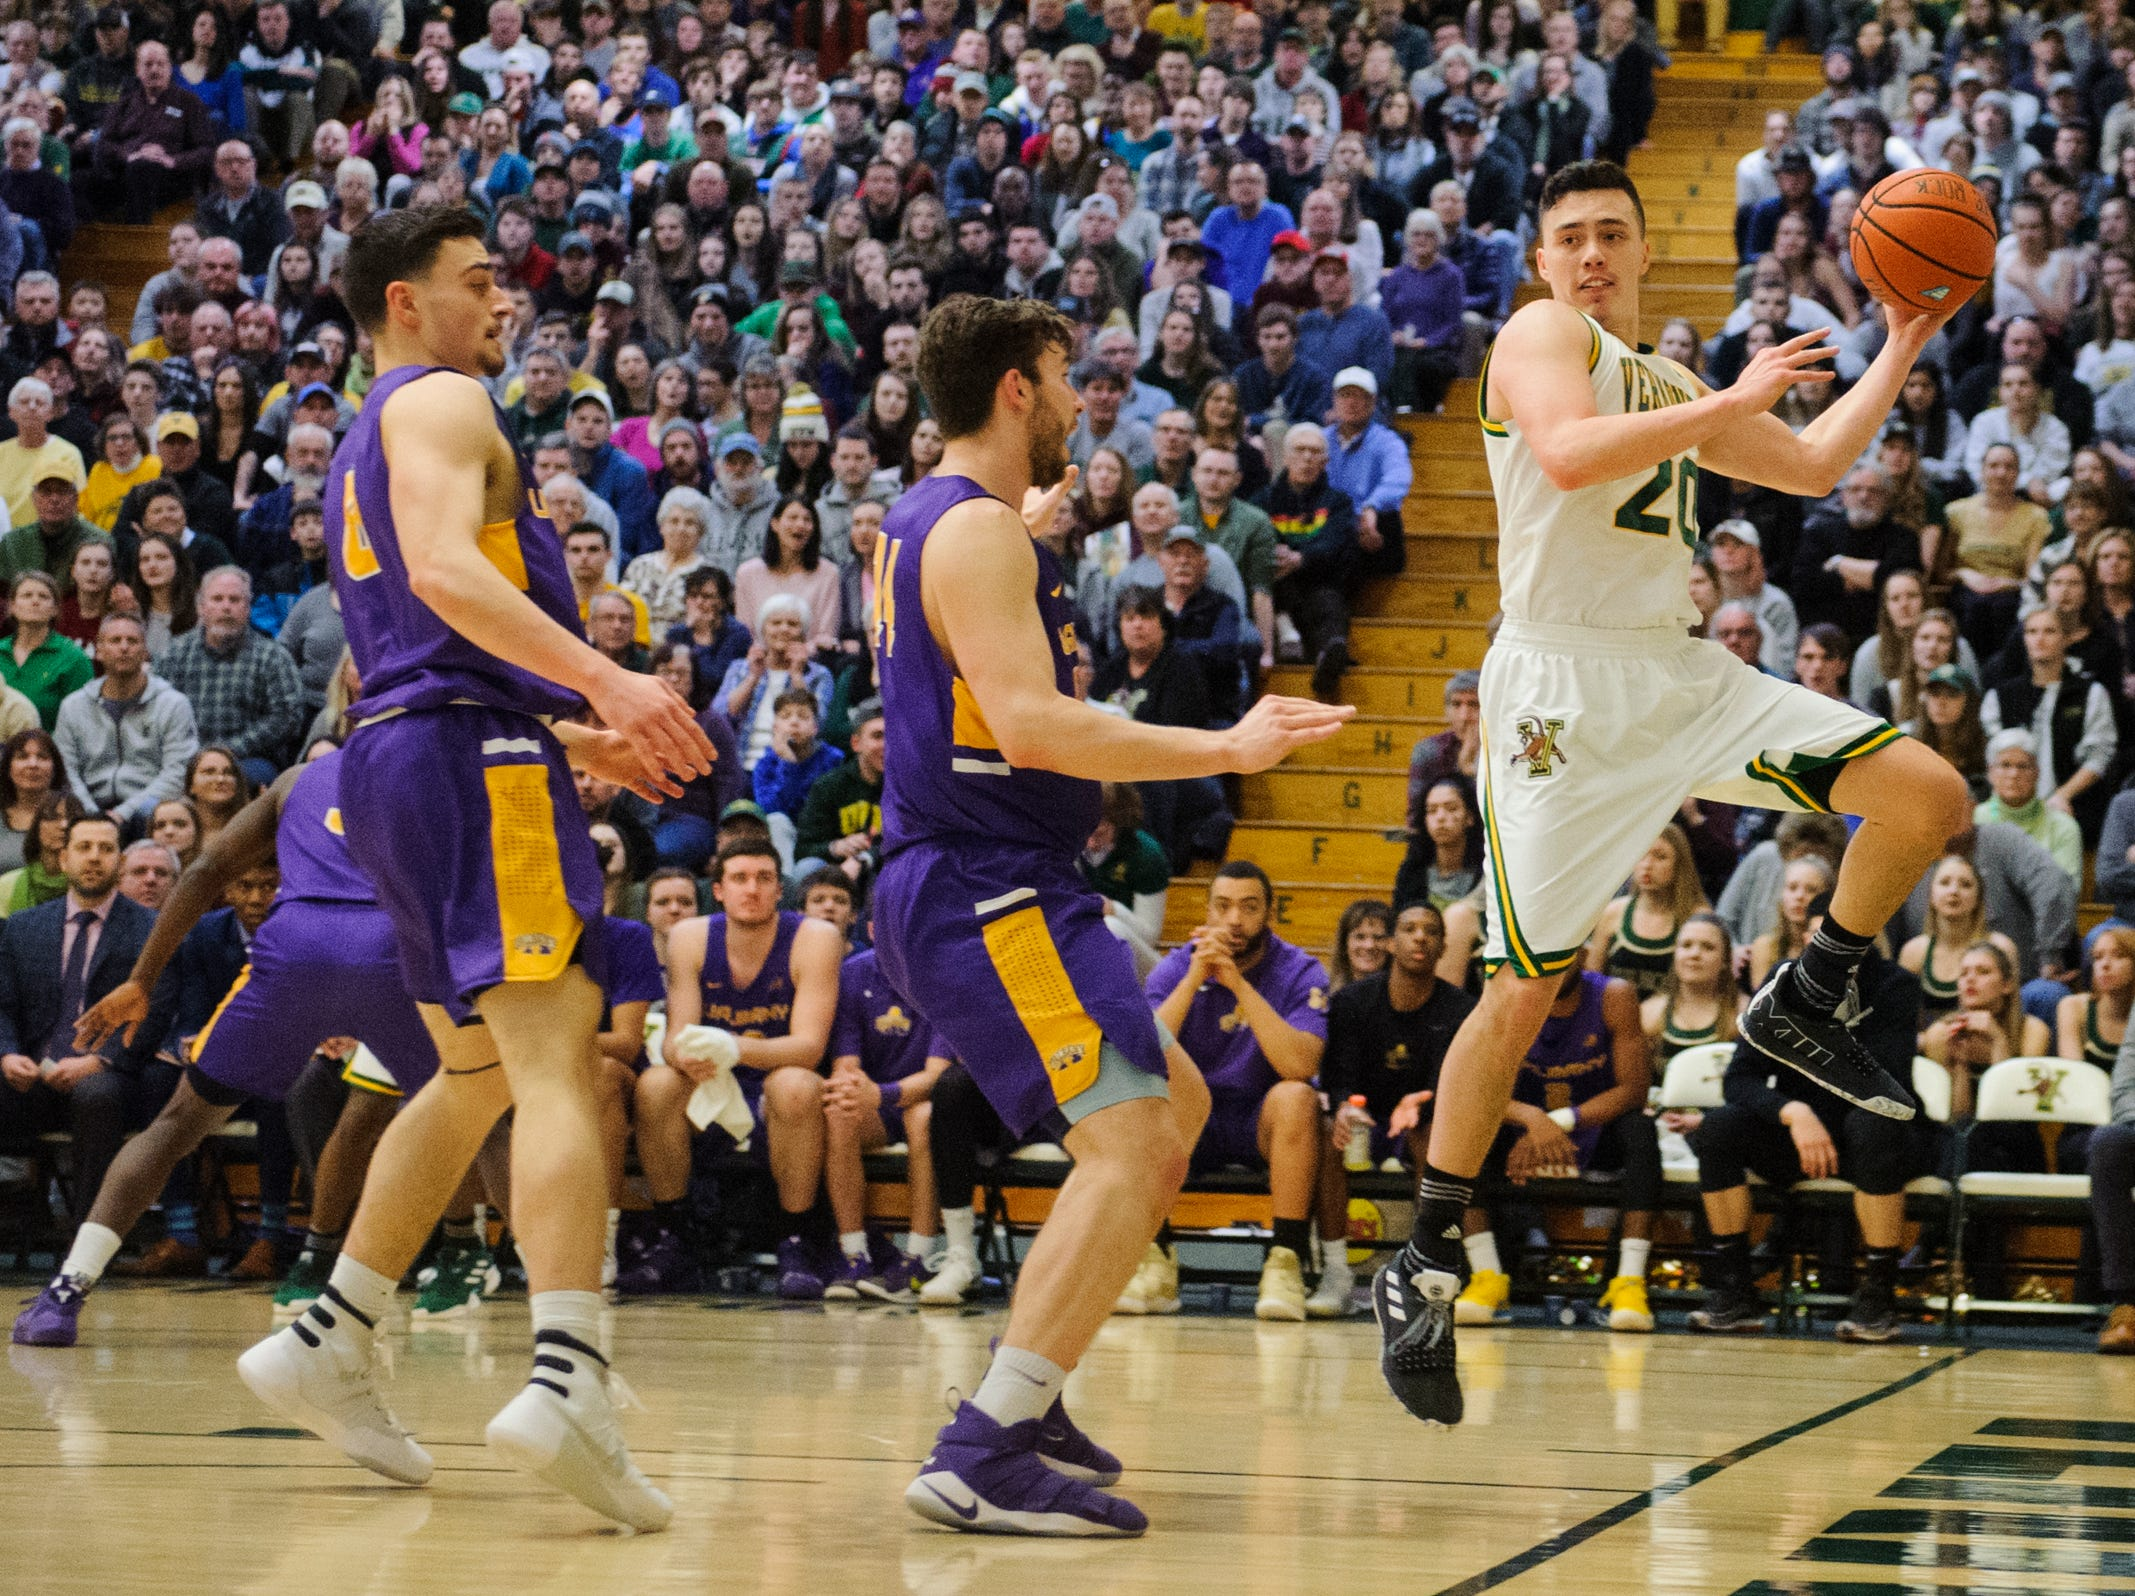 Vermont guard Ernie Duncan (20) leaps to save the ball from going out of bounds during the men's basketball game between the Albany Great Danes and the Vermont Catamounts at Patrick Gym on Saturday February 9, 2019 in Burlington, Vermont.